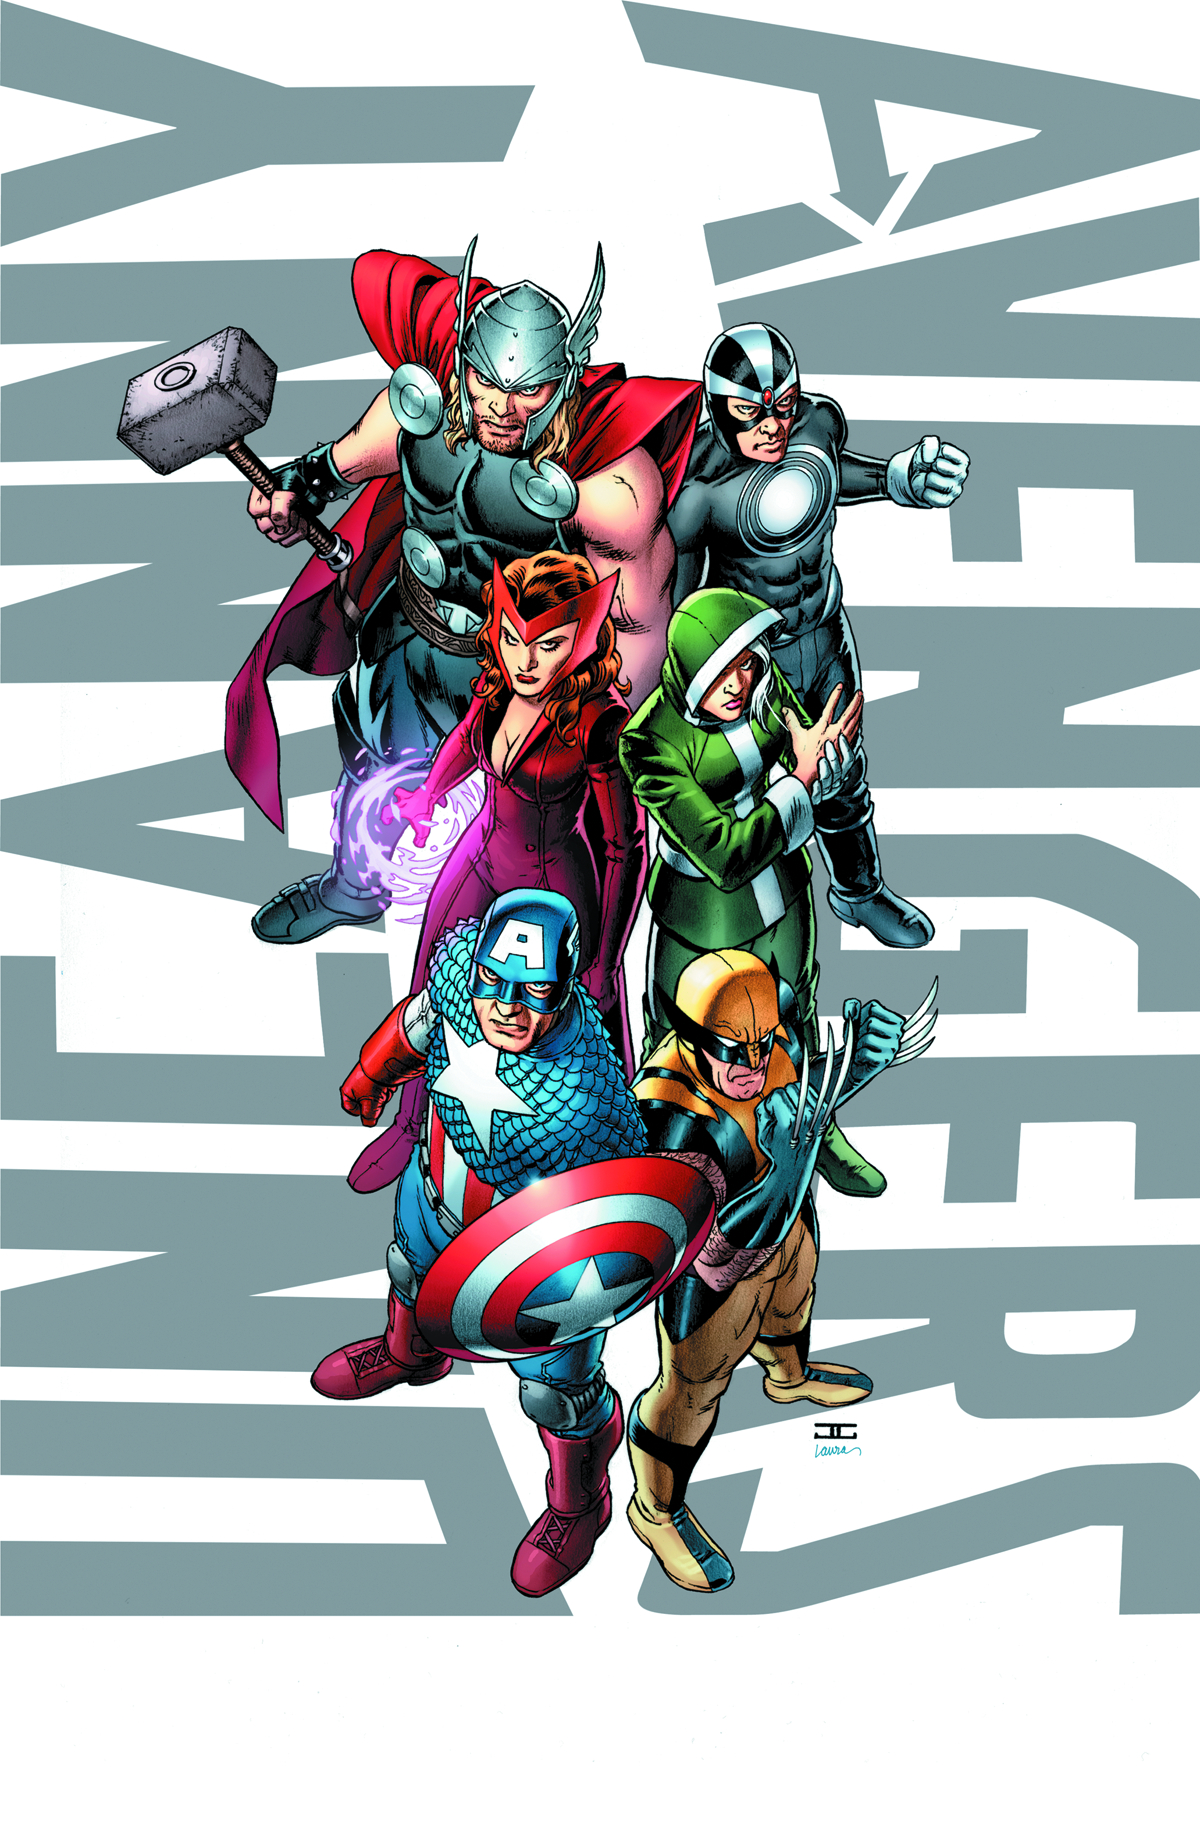 UNCANNY AVENGERS BY CASSADAY POSTER NOW